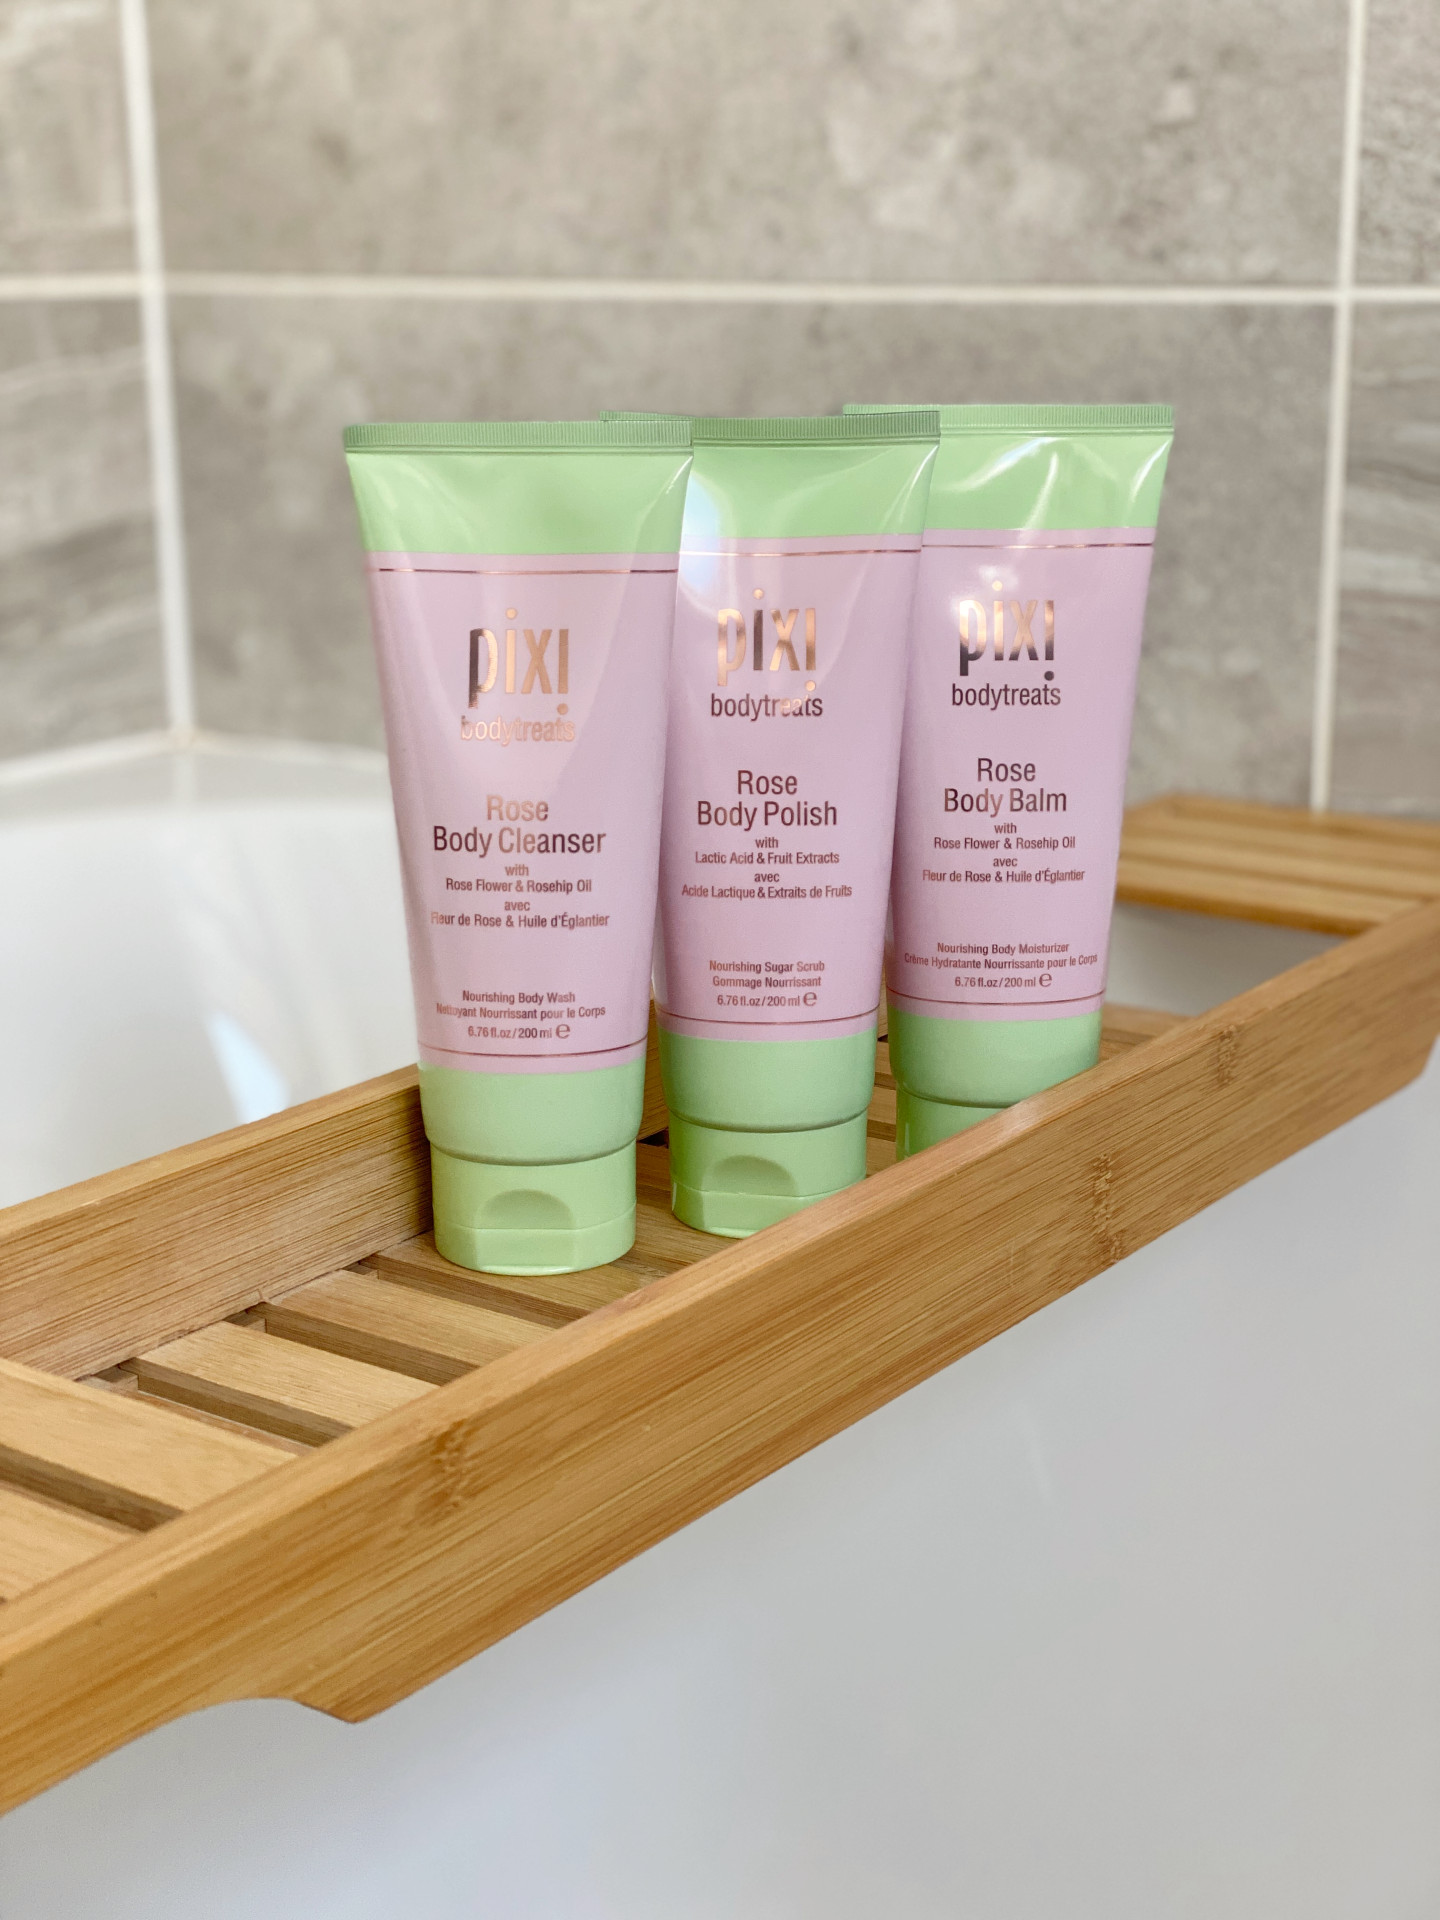 pixi beauty rose bodytreats review